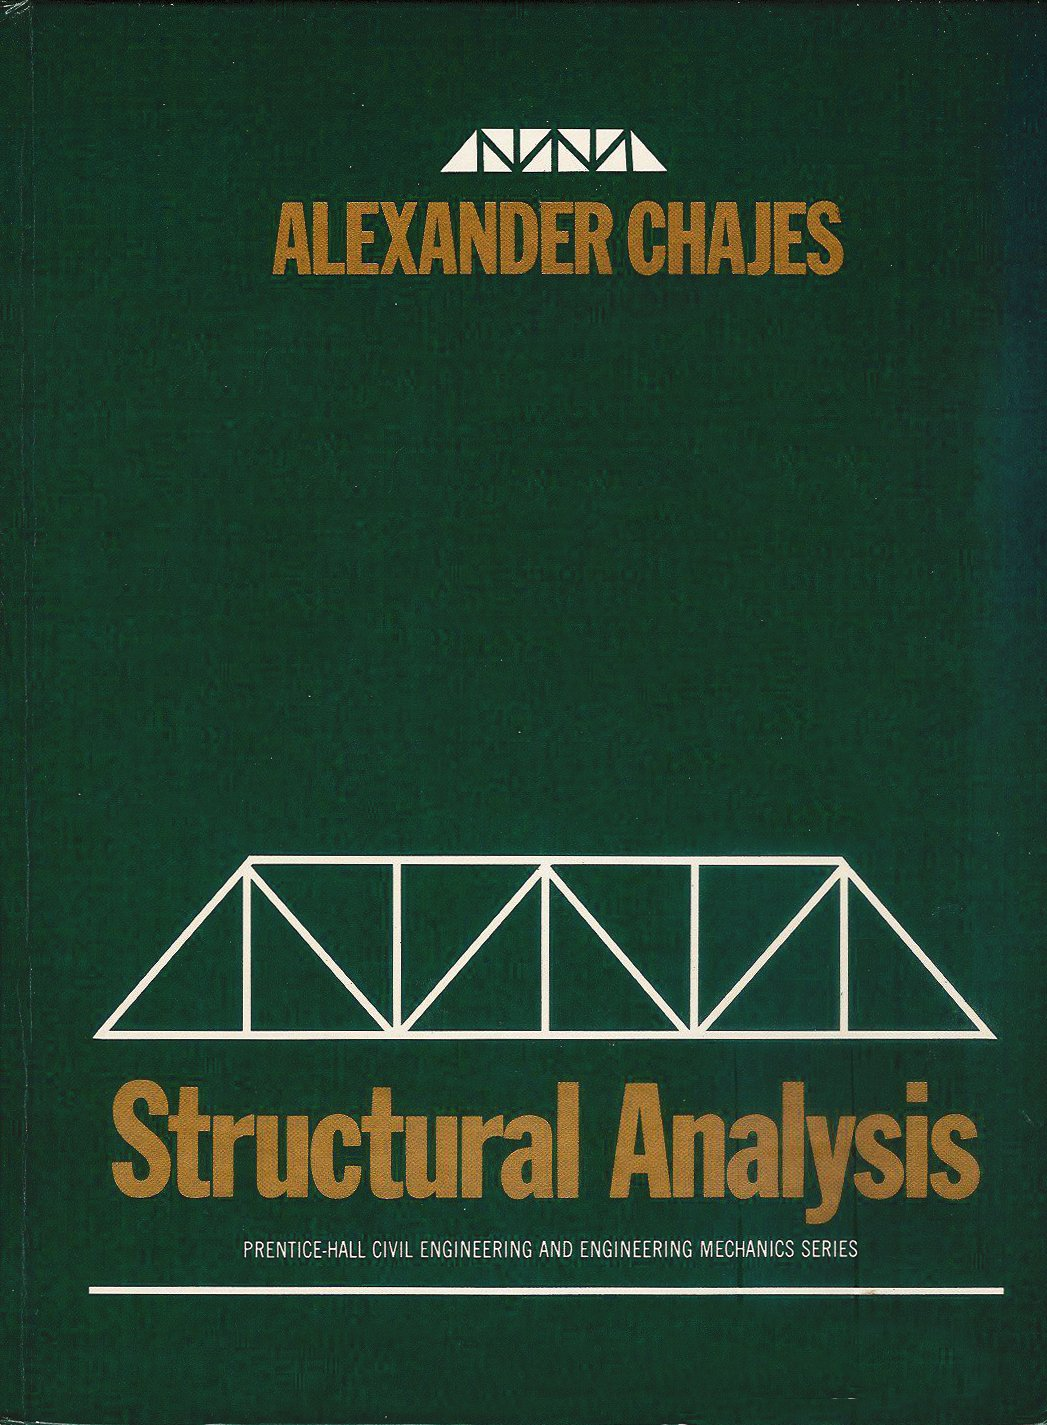 structural analysis solutions manual by alexander chajes